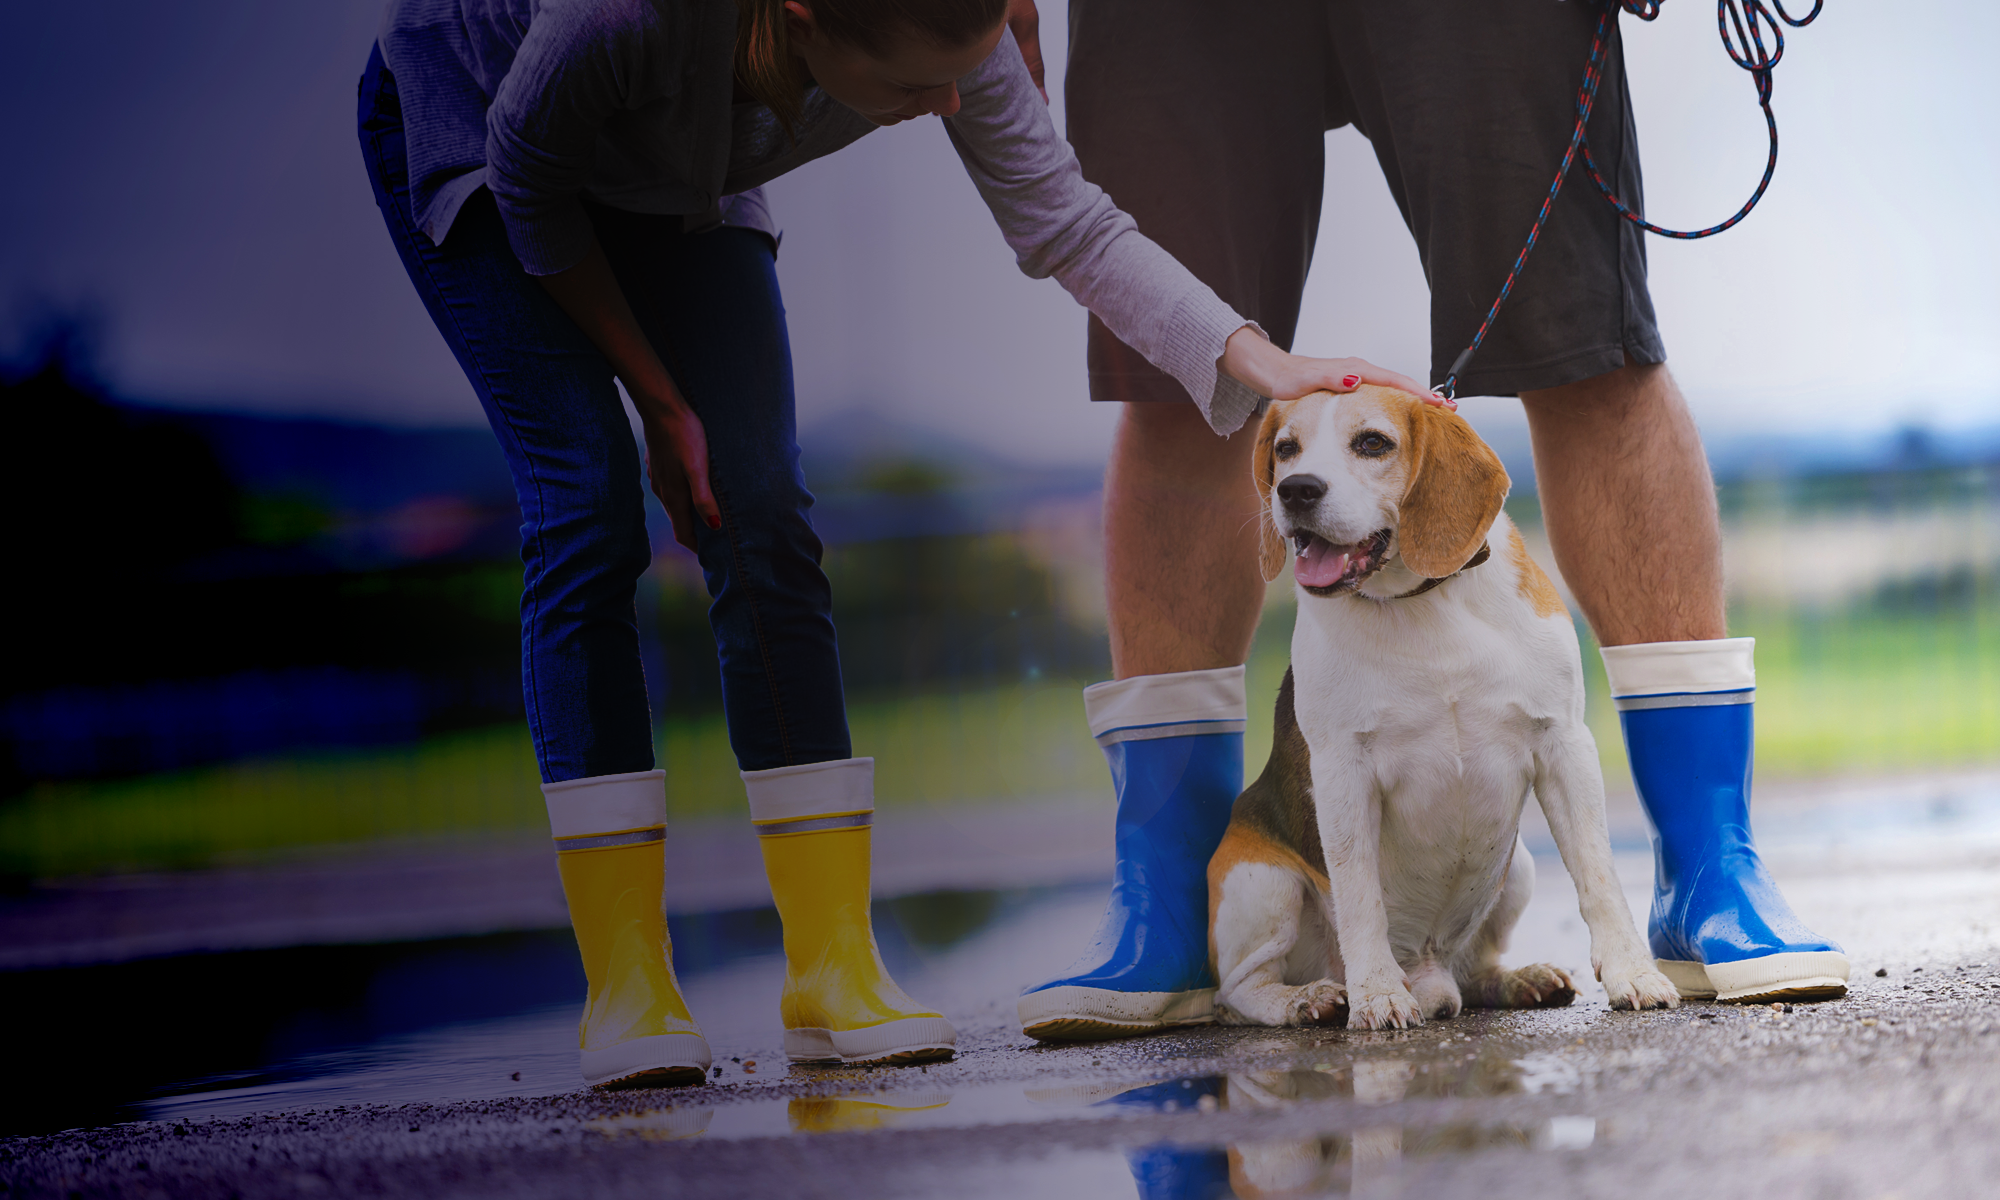 What Do Zoom, Dog Walkers, And Encryption Have In Common?